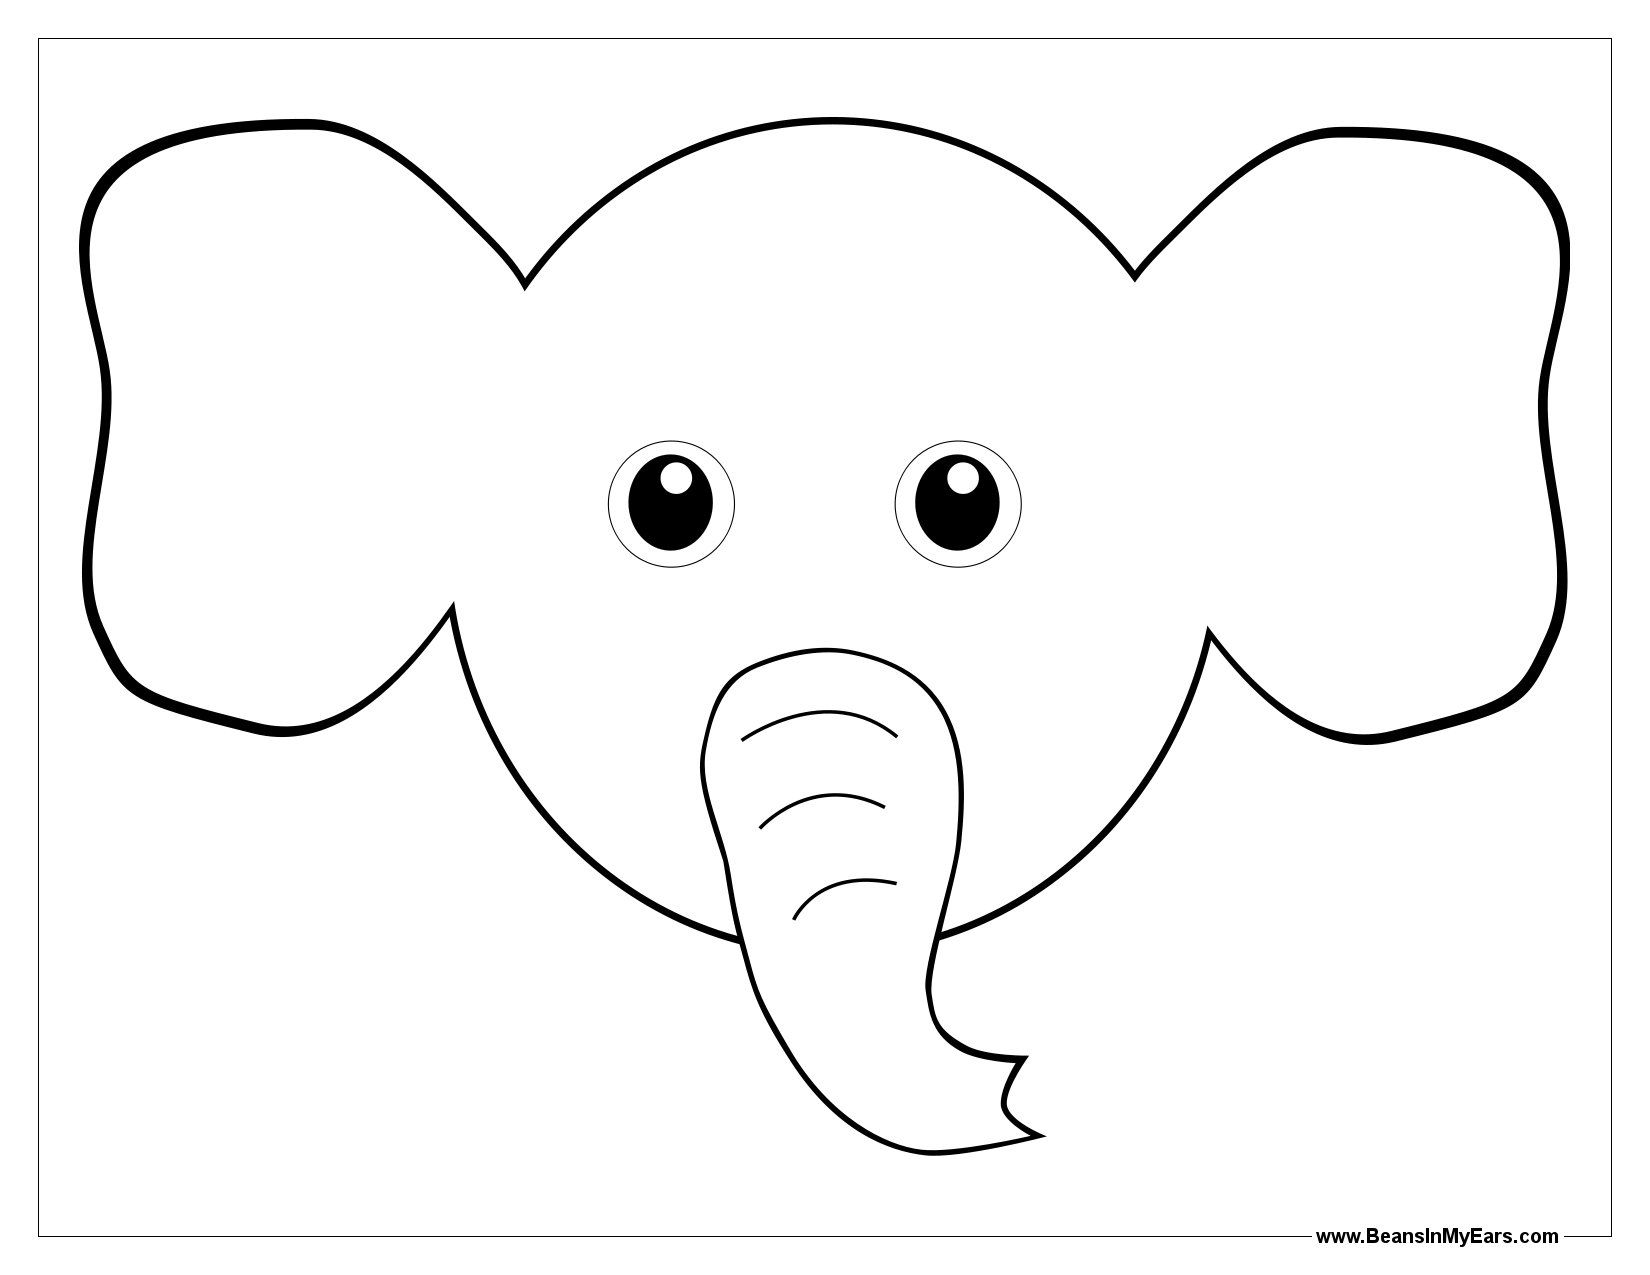 Elephant head coloring page | Elephants Coloring Book | Pinterest ...